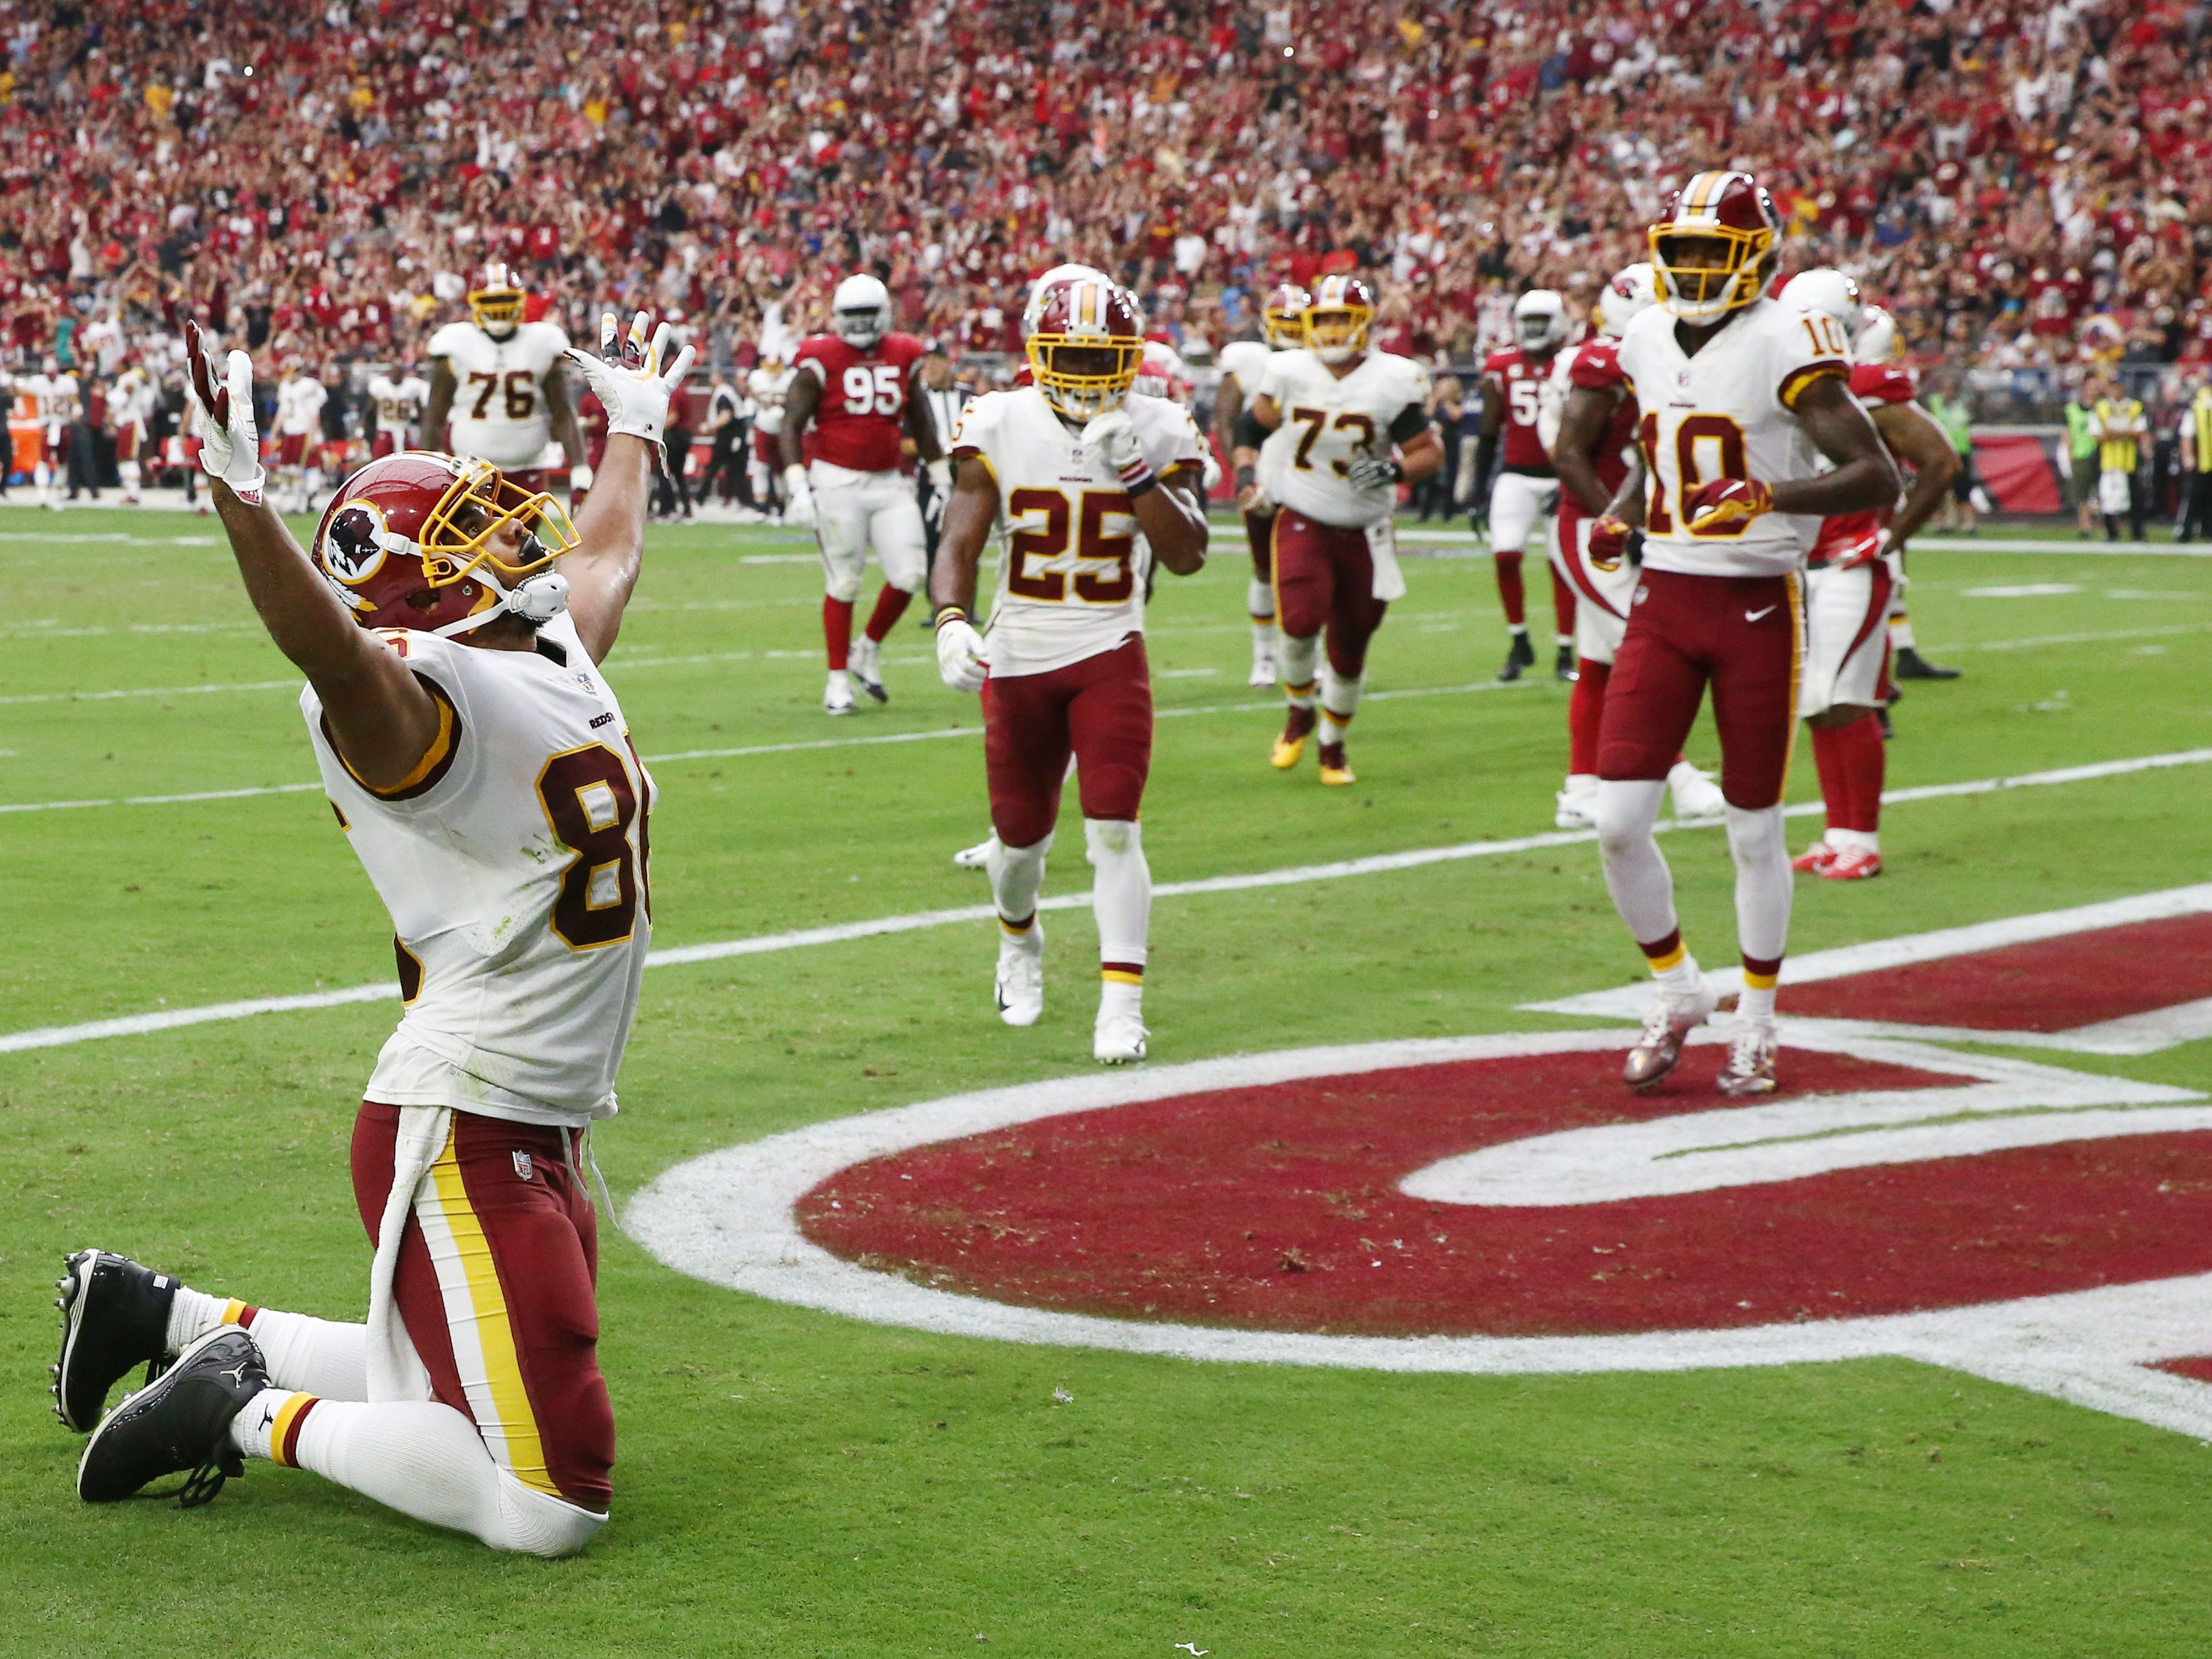 Washington Redskins tight end Jordan Reed celebrates his touchdown catch against the Arizona Cardinals in the first half at State Farm Stadium.